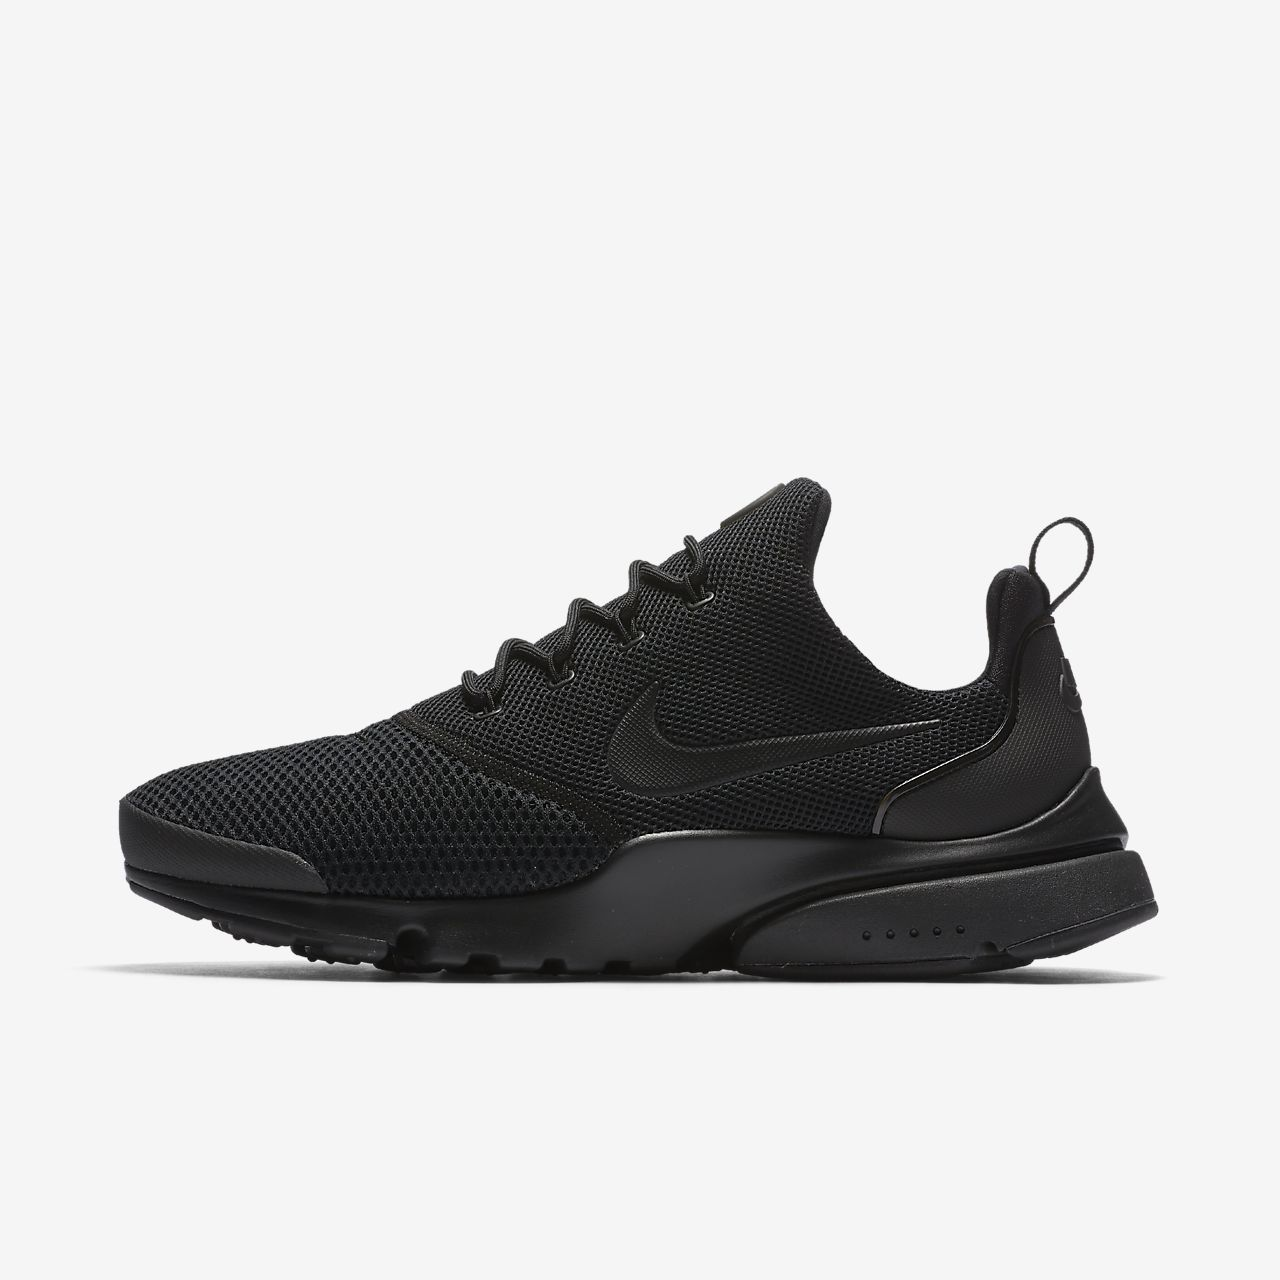 Fly Chaussure Presto Pour Nike Homme wxvx6TEq